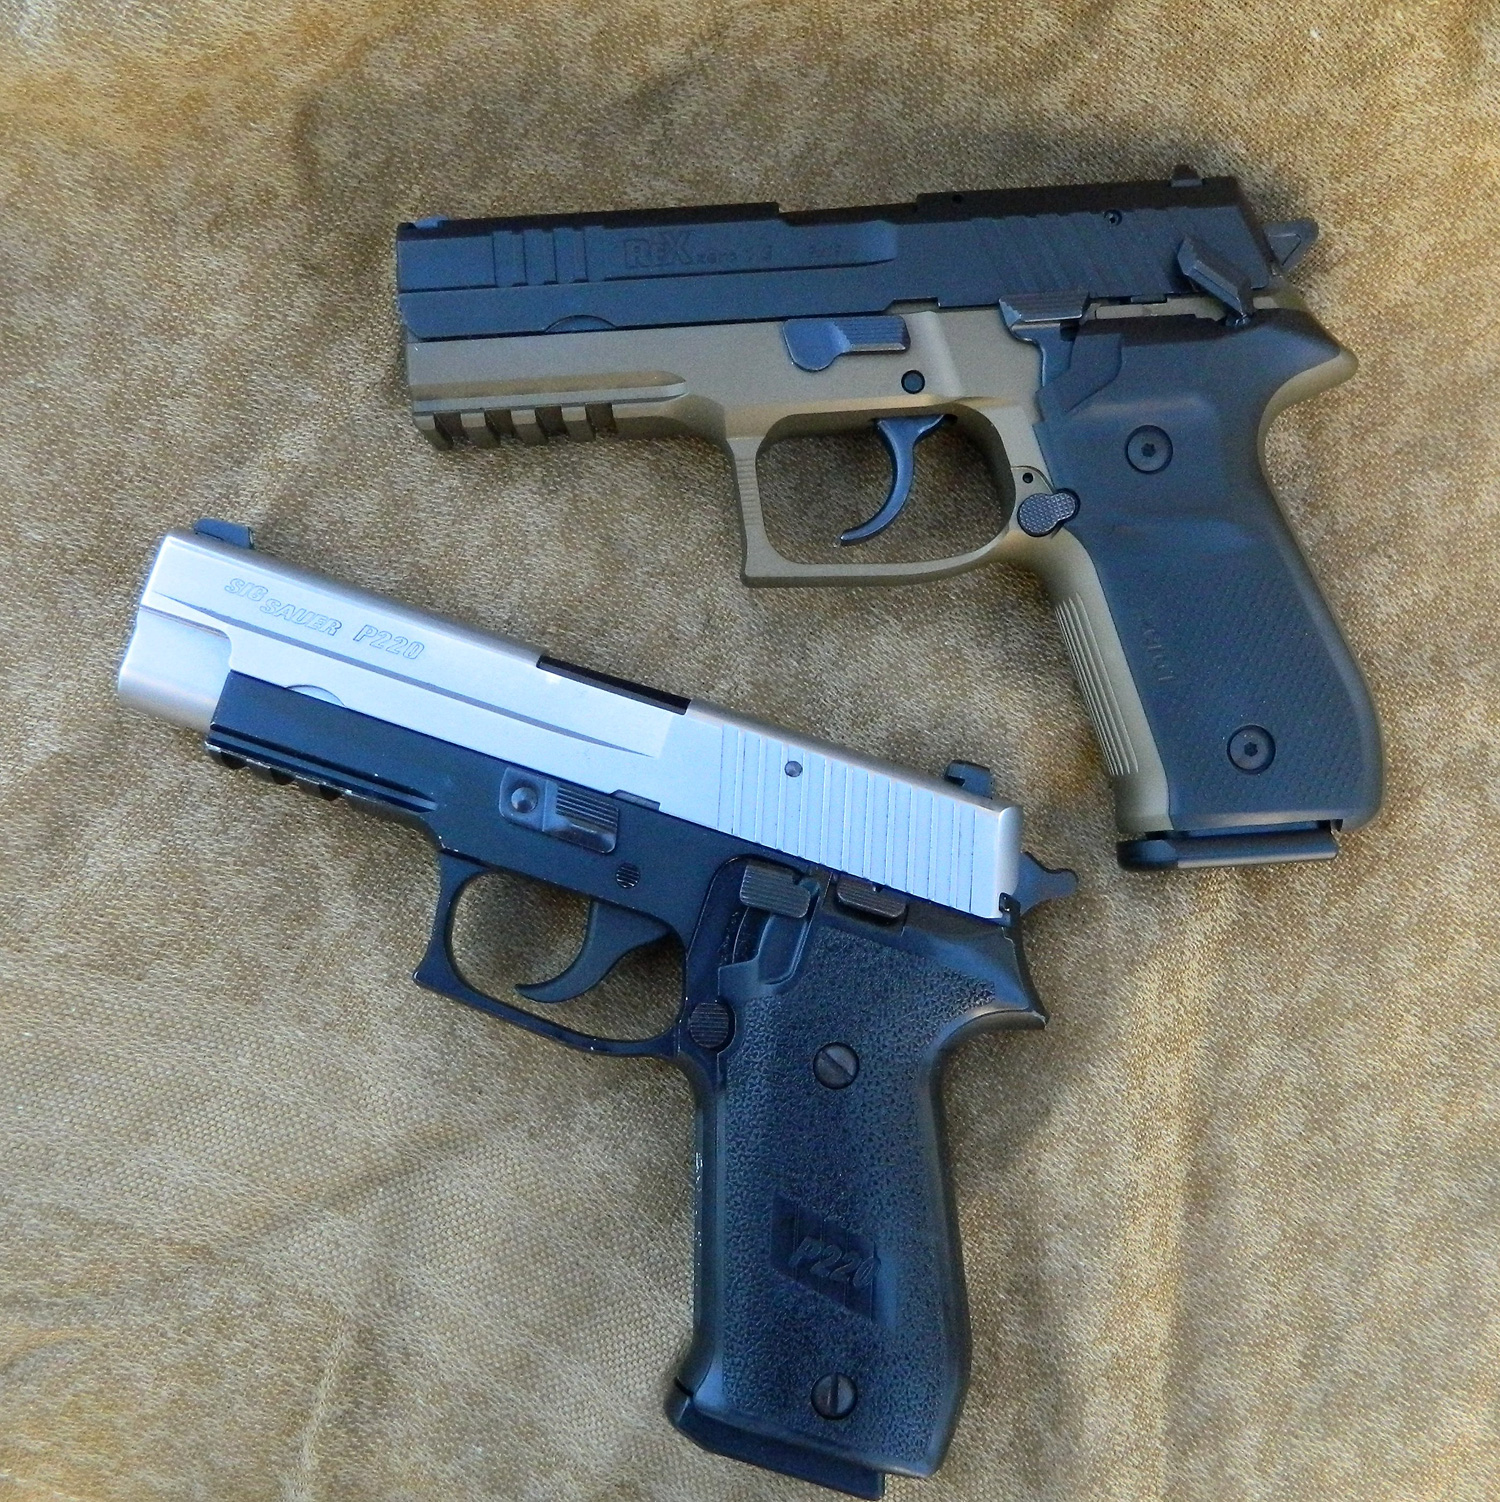 Arex Rex Zero pistol top and Sig Sauer P226 pistol bottom